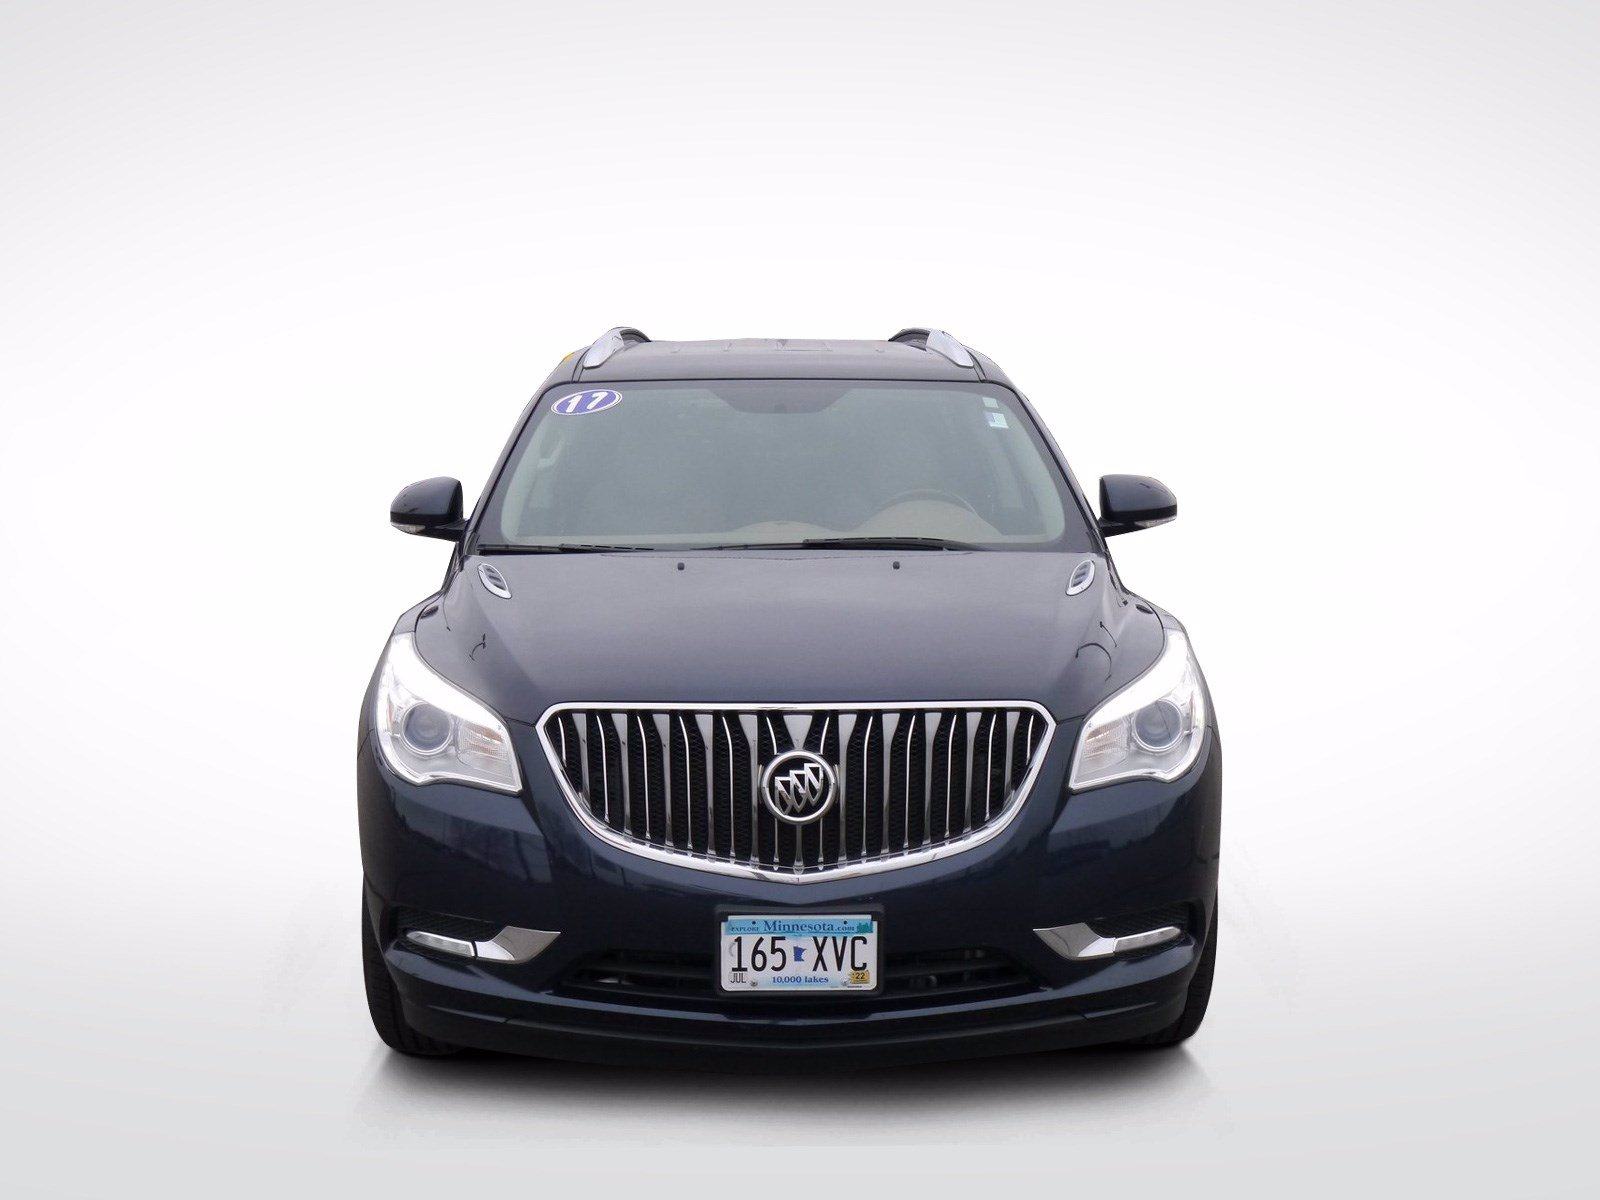 Used 2017 Buick Enclave Leather with VIN 5GAKVBKD0HJ173126 for sale in Baxter, Minnesota